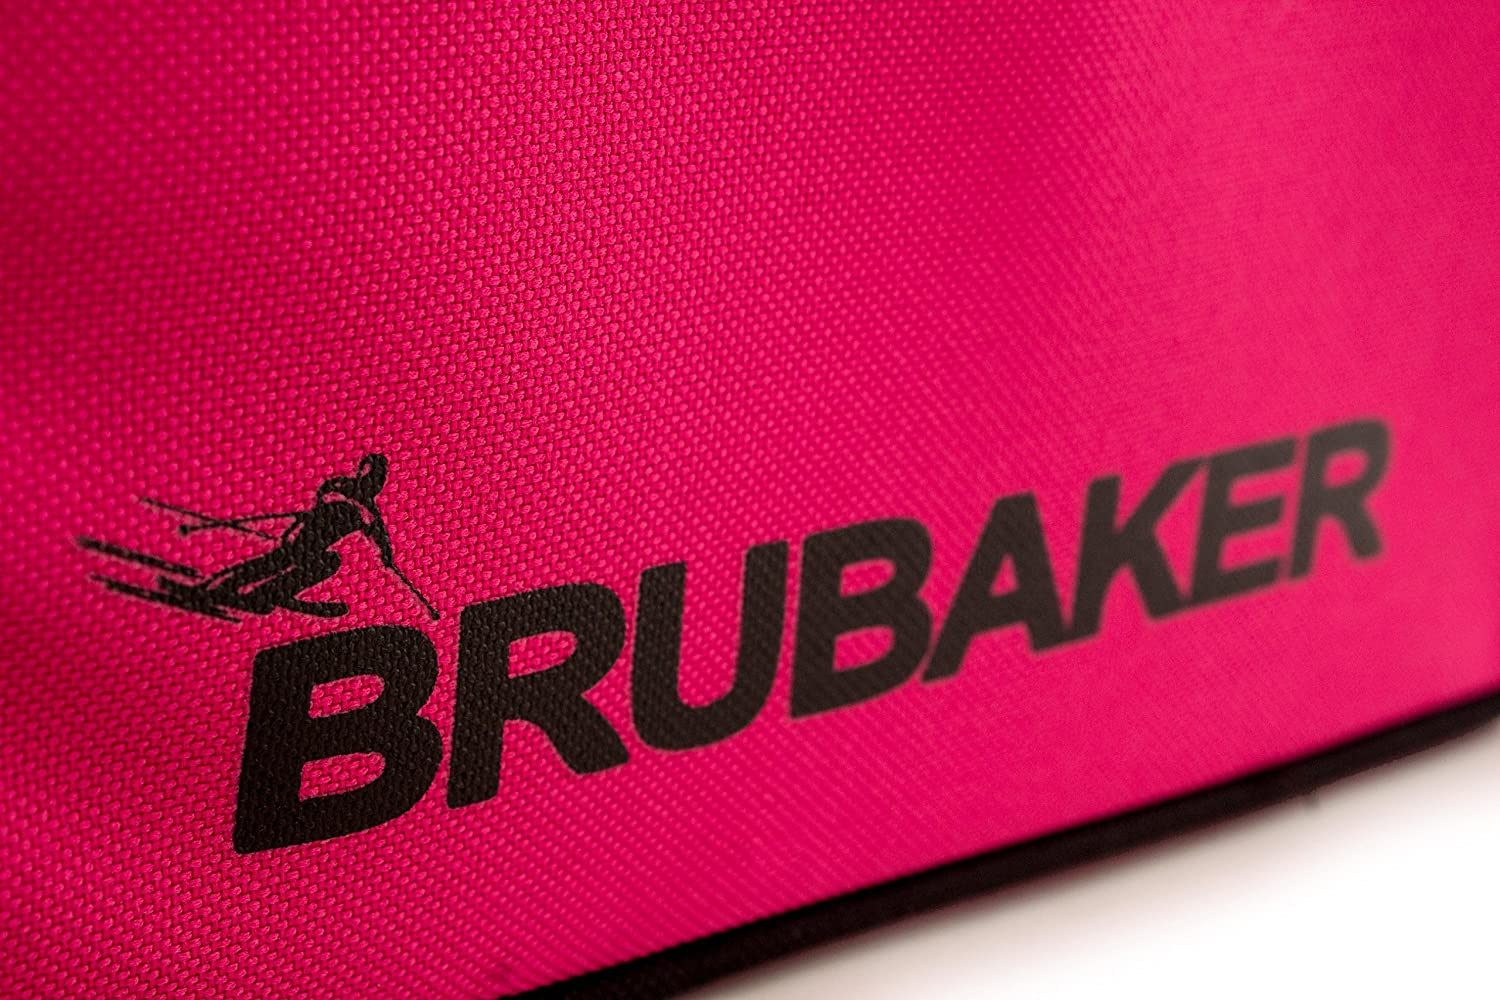 Poles Boots and Helmet BRUBAKER Superfunction Limited Edition Combo Ski Boot Bag and Ski Bag for 1 Pair of Ski